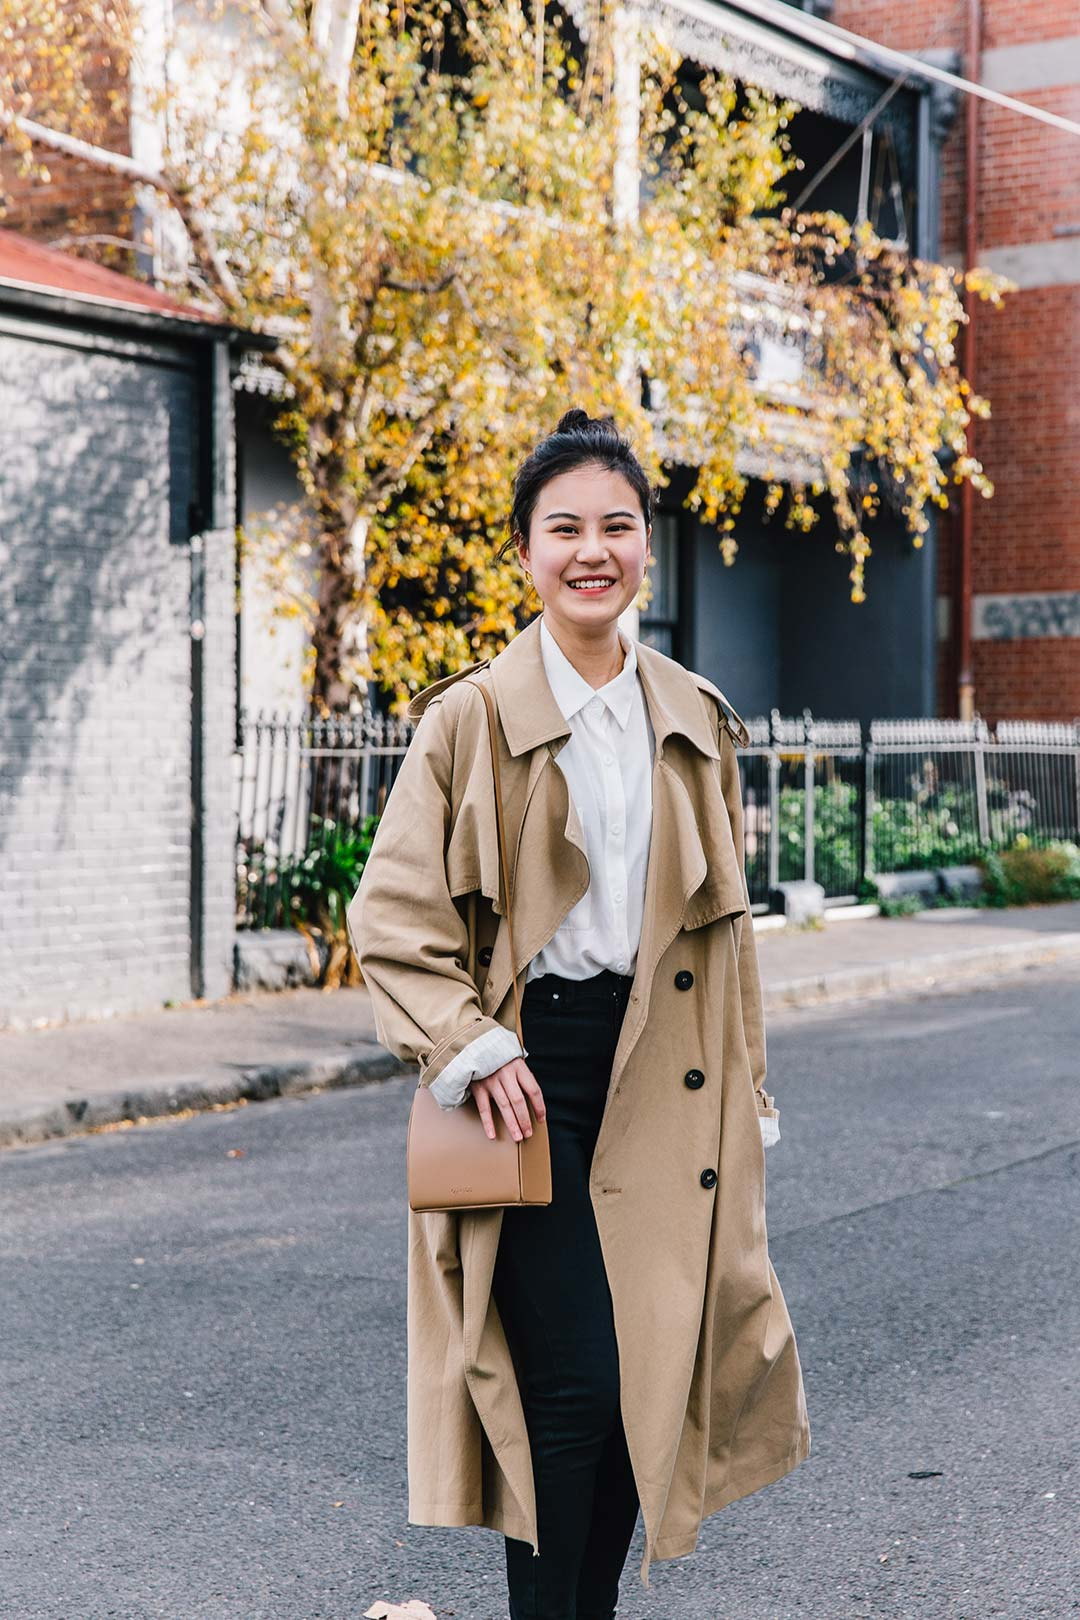 helena-street-style-photographer-melbourne-australia-taylor-content.jpg